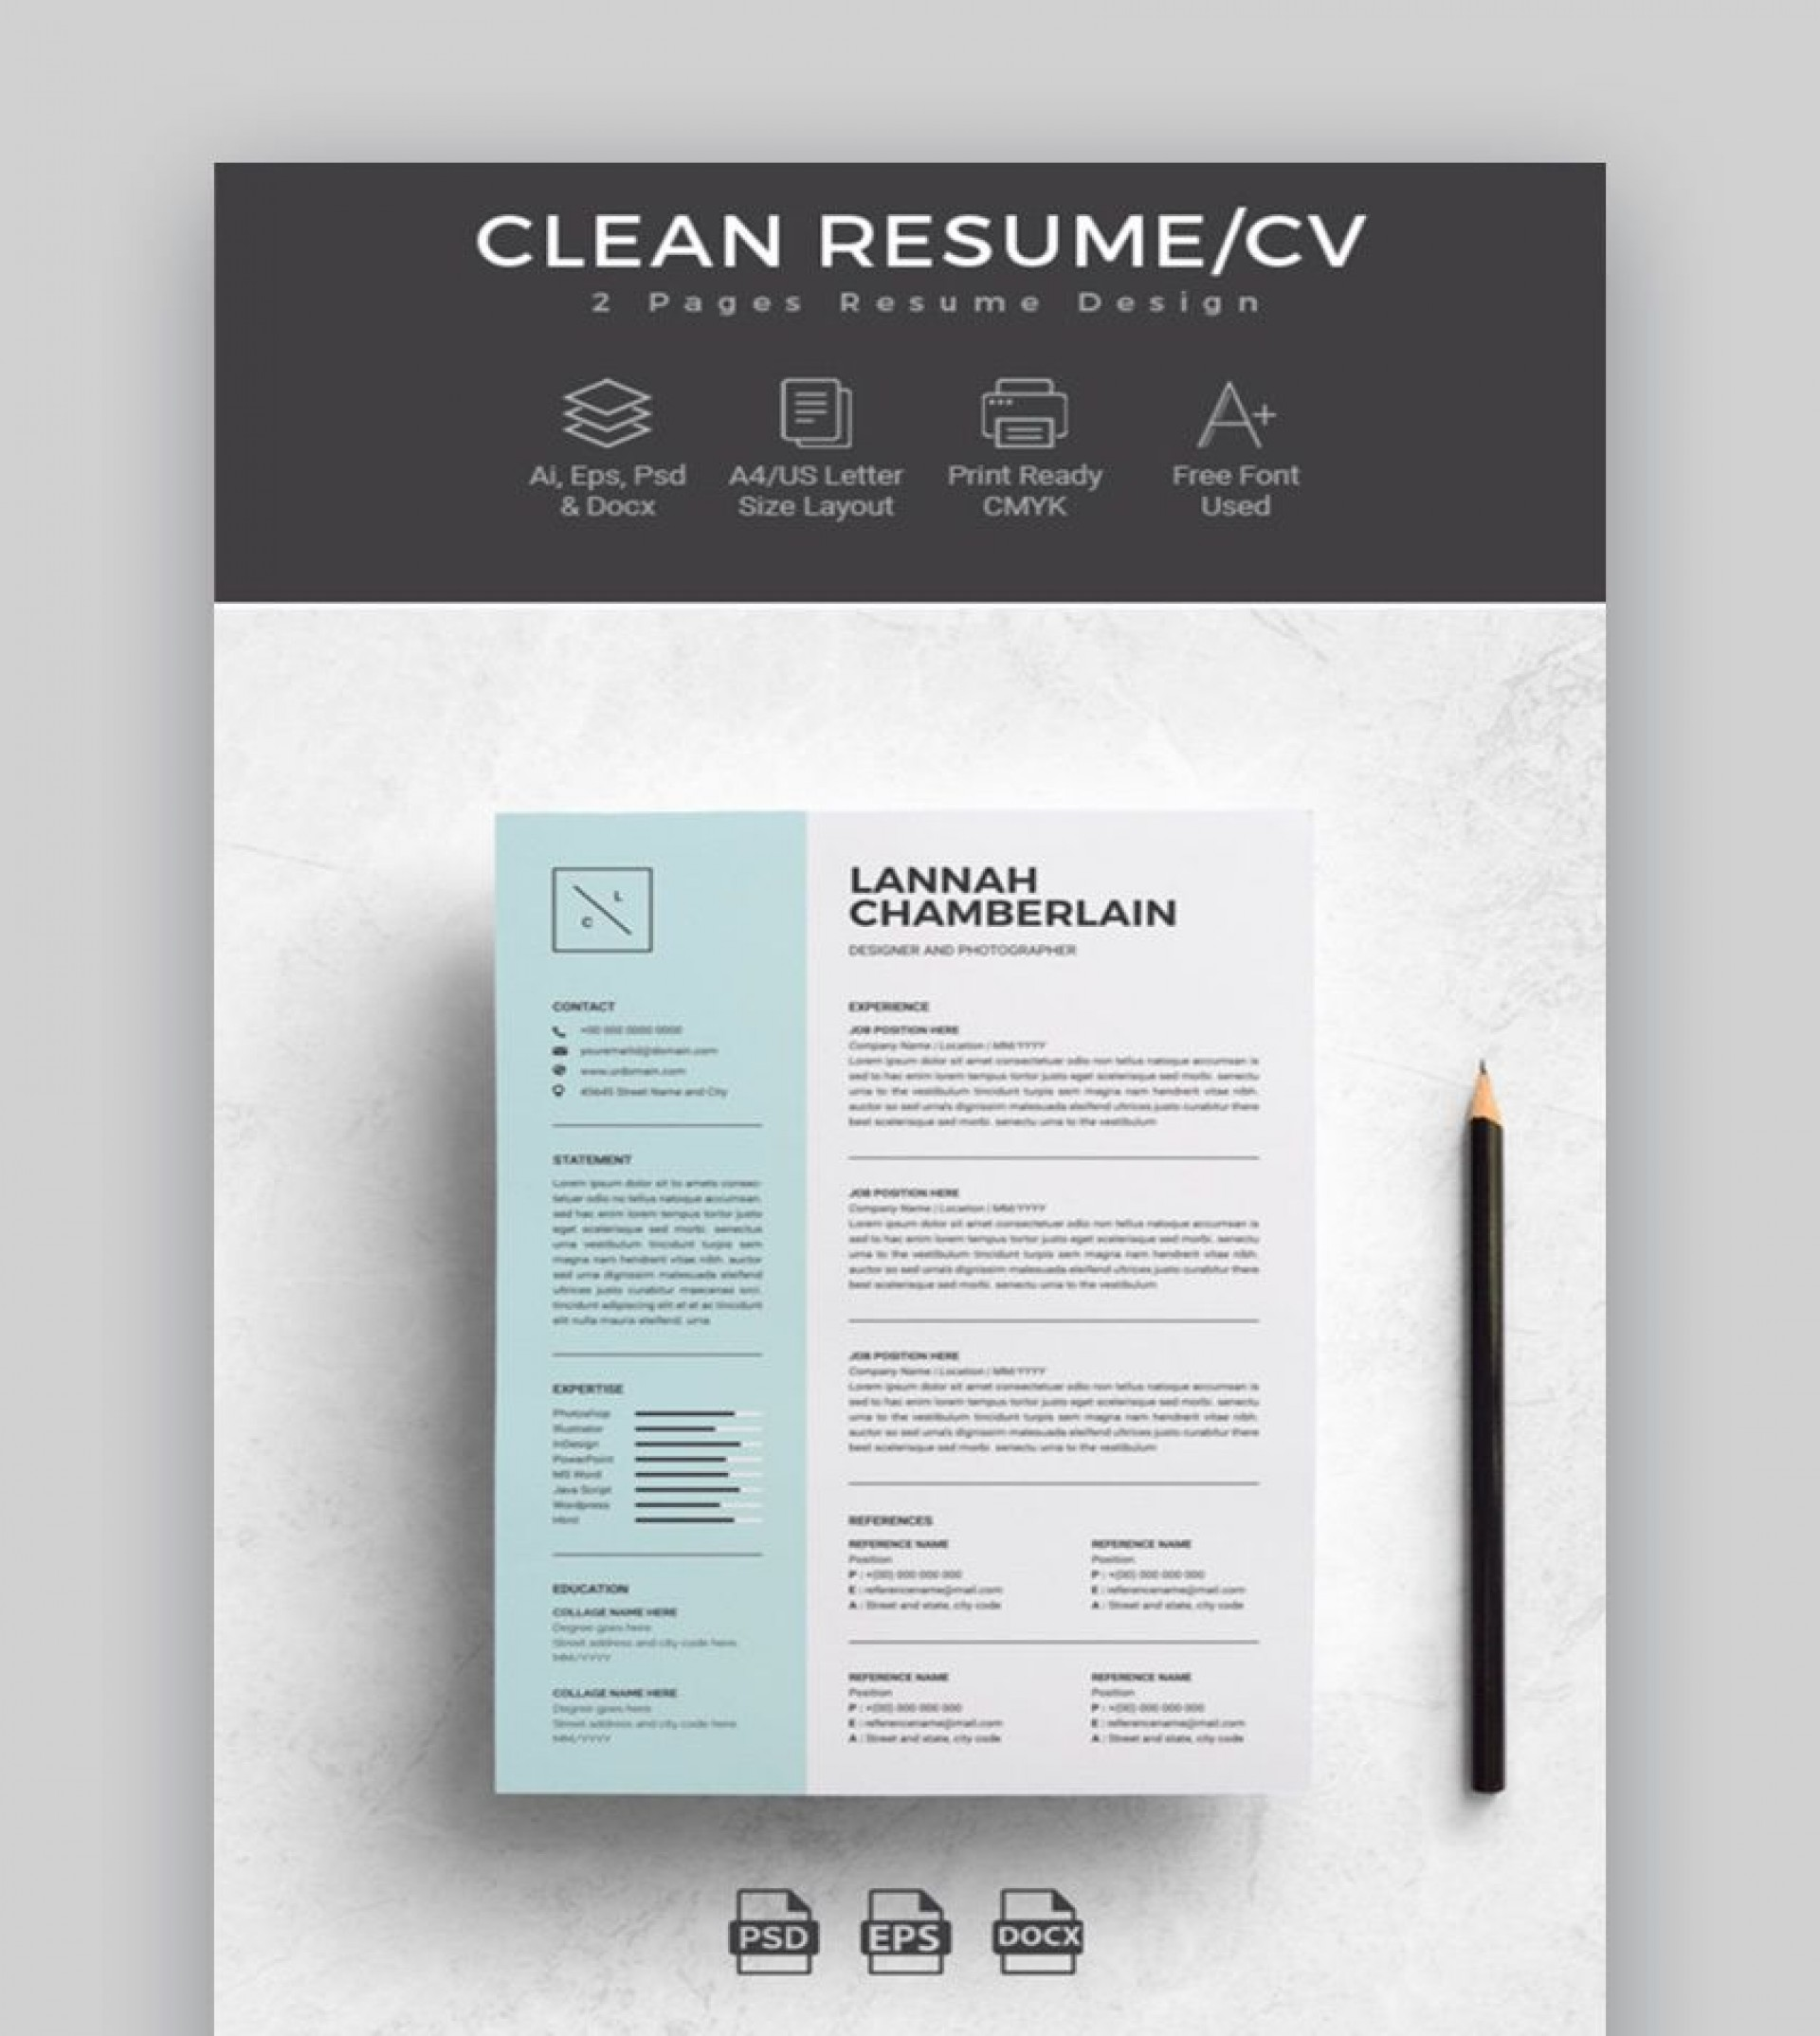 003 Top Resume Template For Word Free Picture  Creative Curriculum Vitae Download Microsoft 20191920